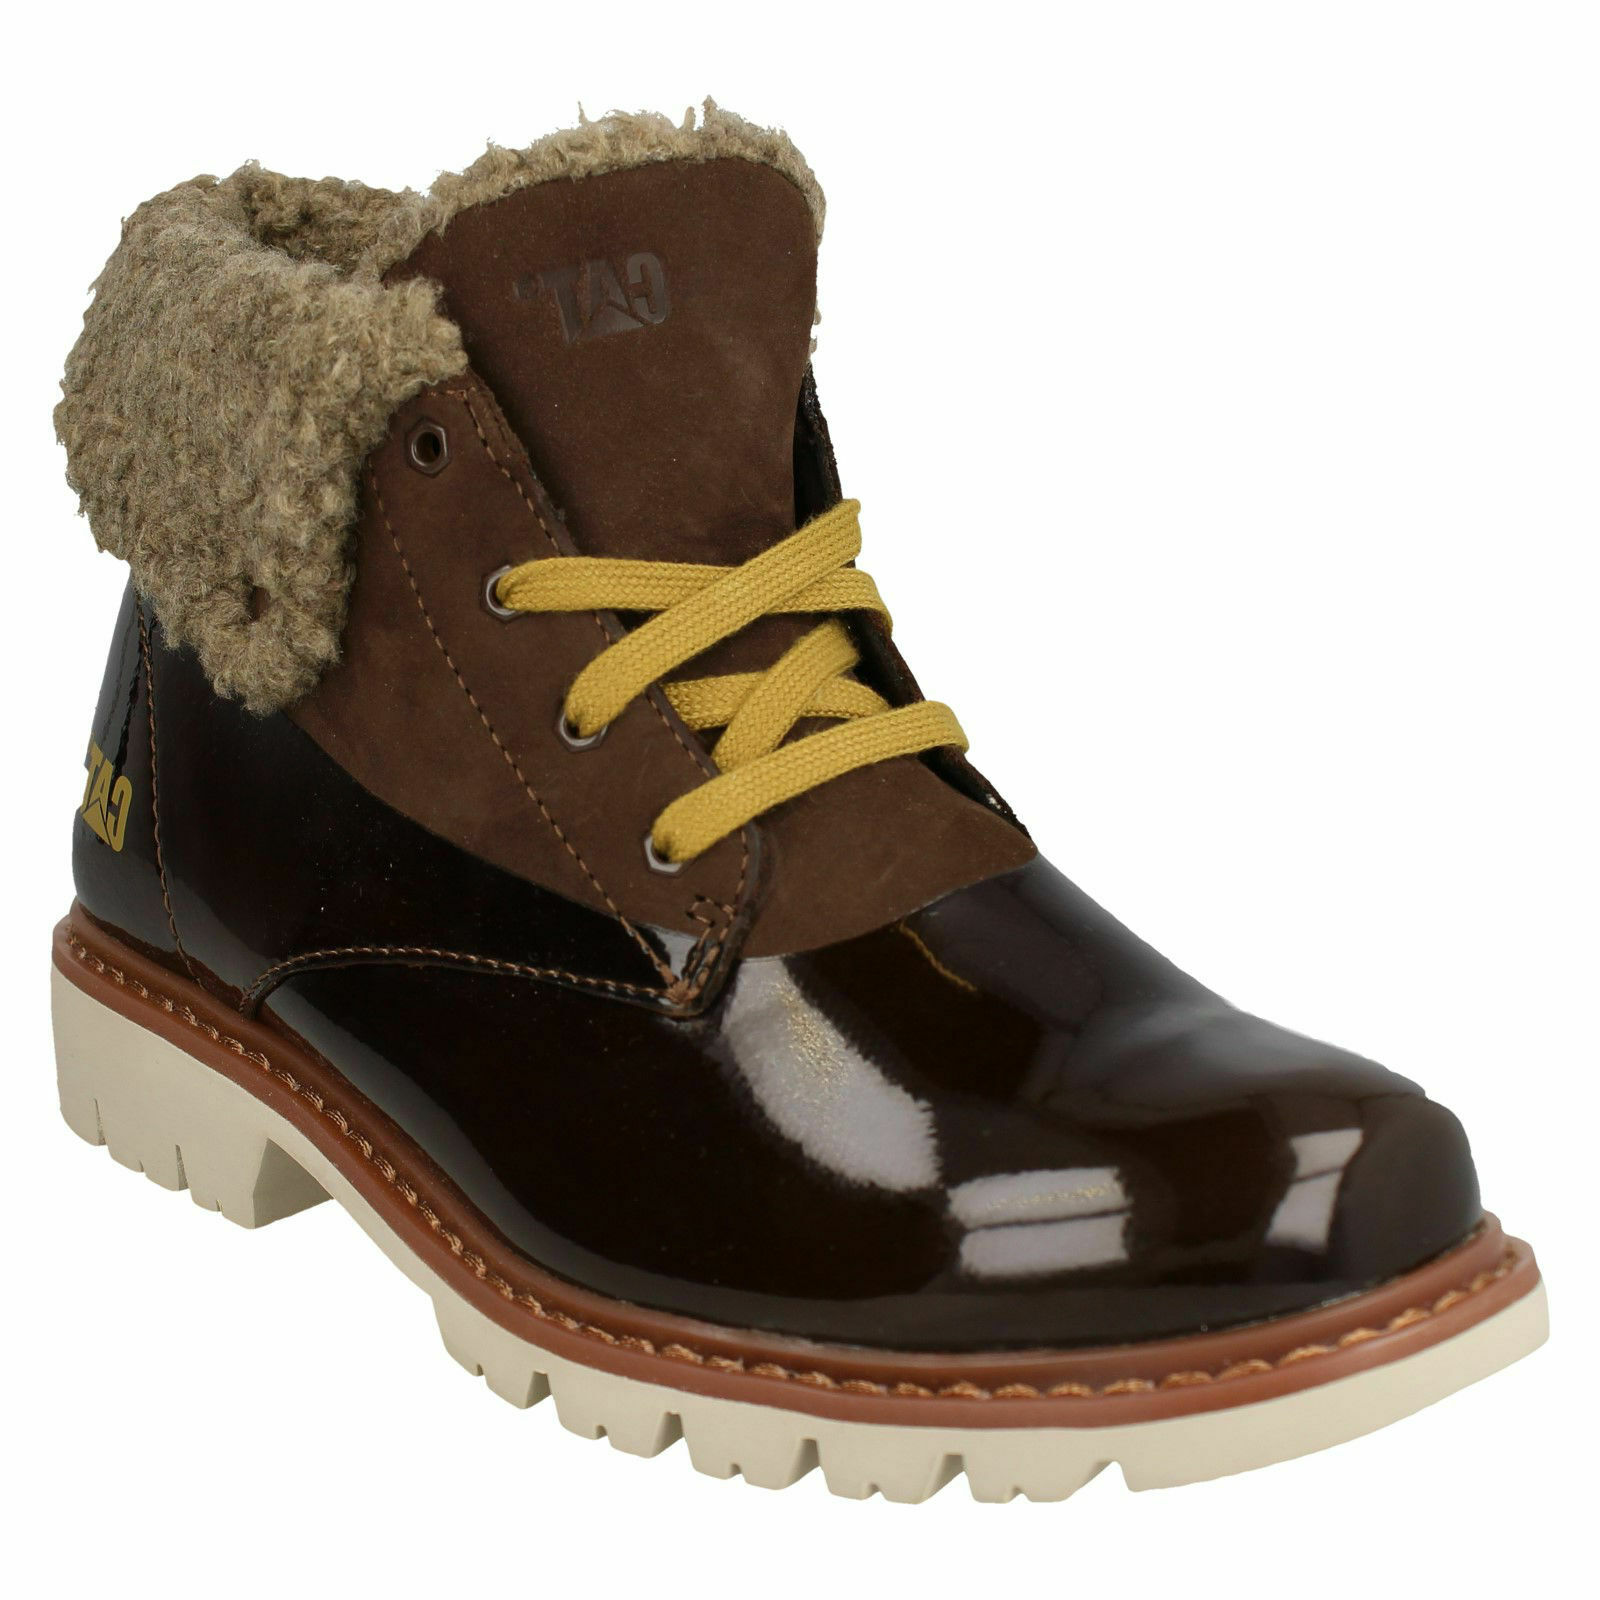 LADIES CATERPILLAR LEATHER PATENT LACE UP WINTER ANKLE BOOTS HUB FUR P308171